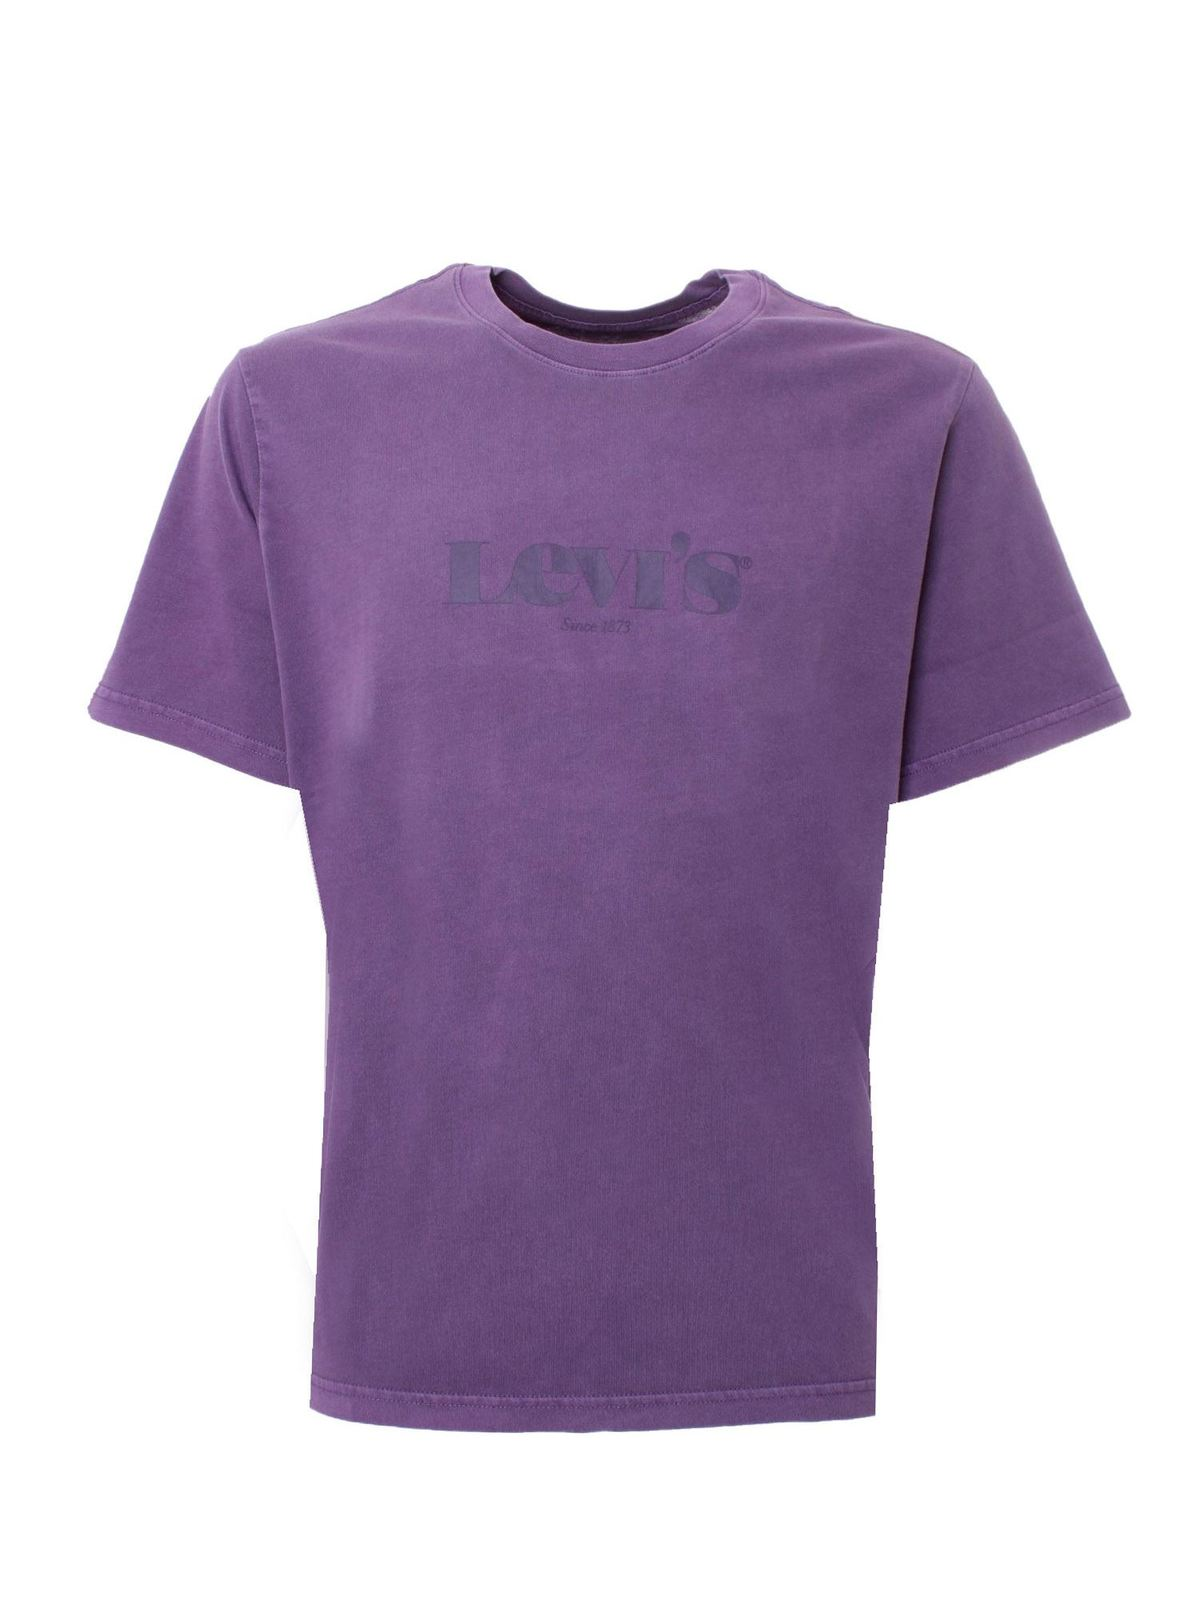 Levi's Cottons RELAXED FIT T-SHIRT IN PURPLE